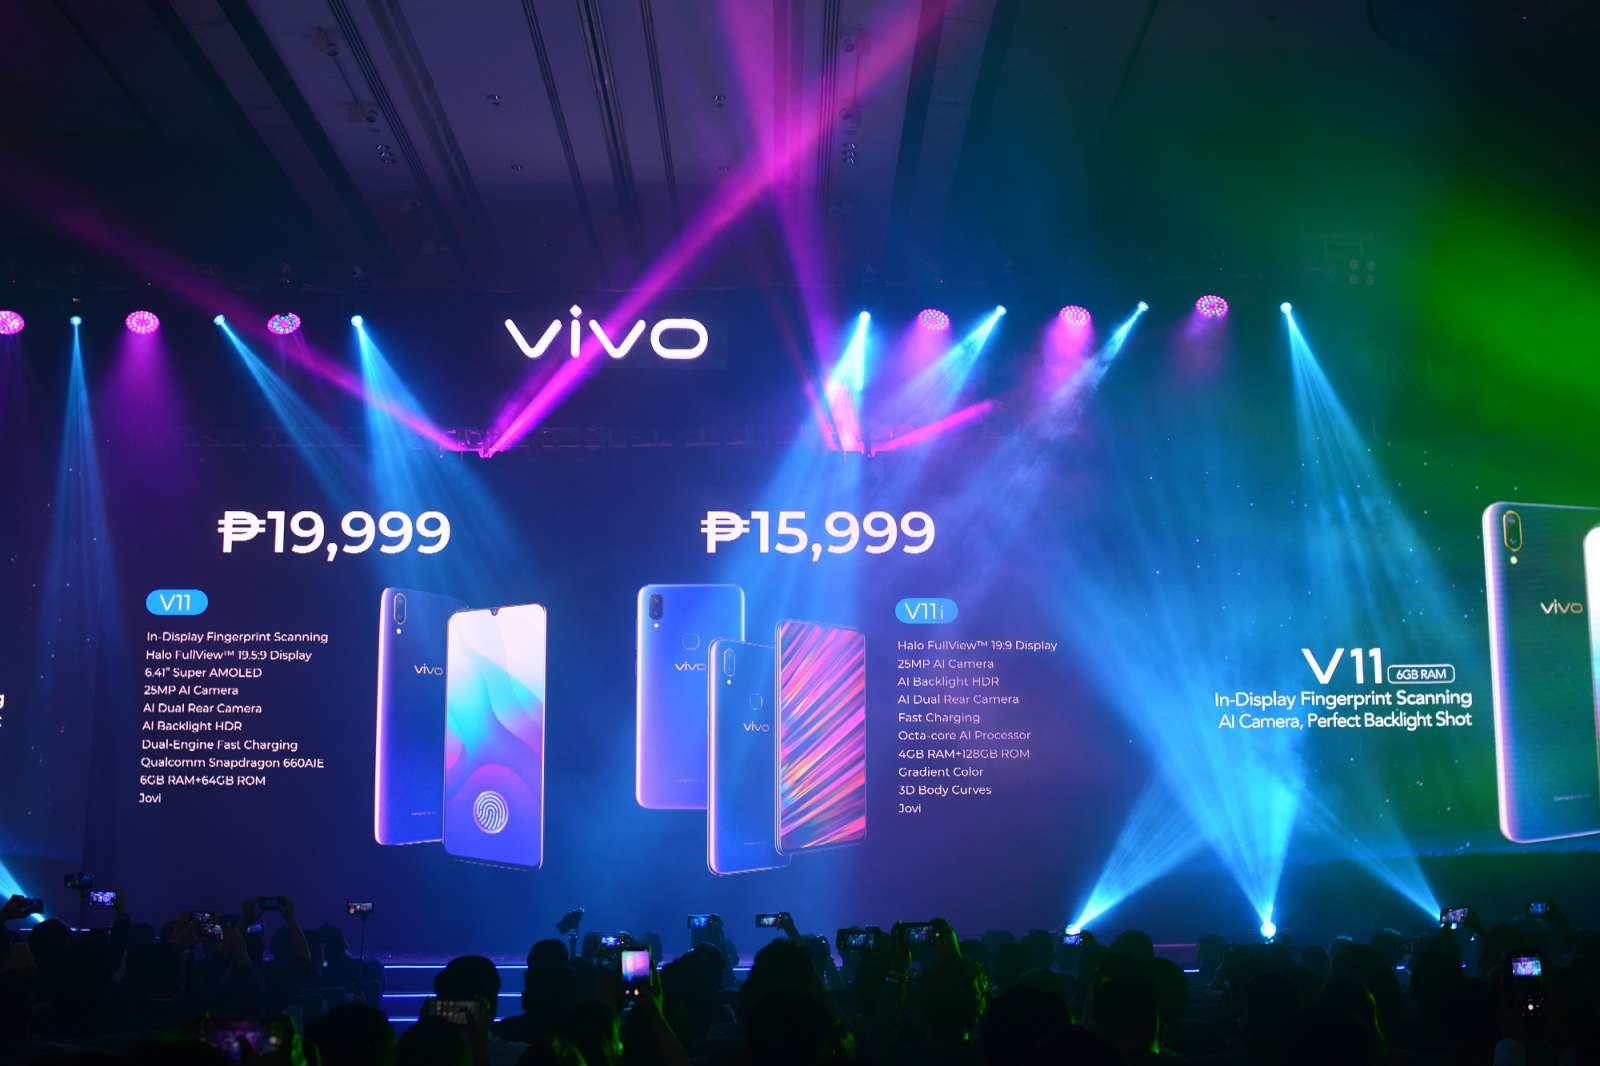 Vivo V11 Vivo V11i launch Philippines